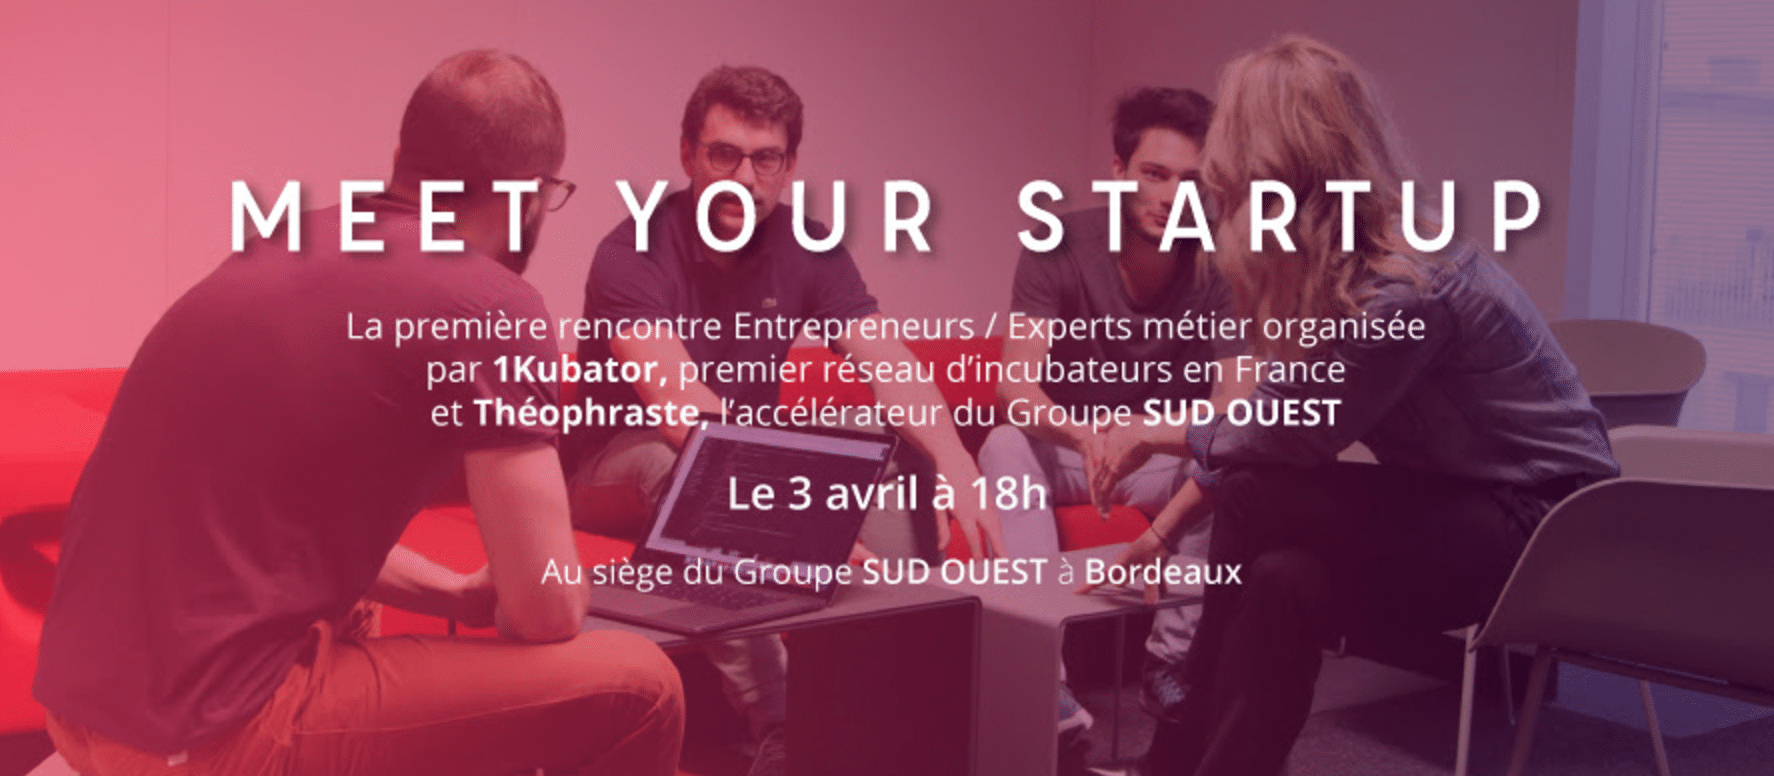 meet your startup